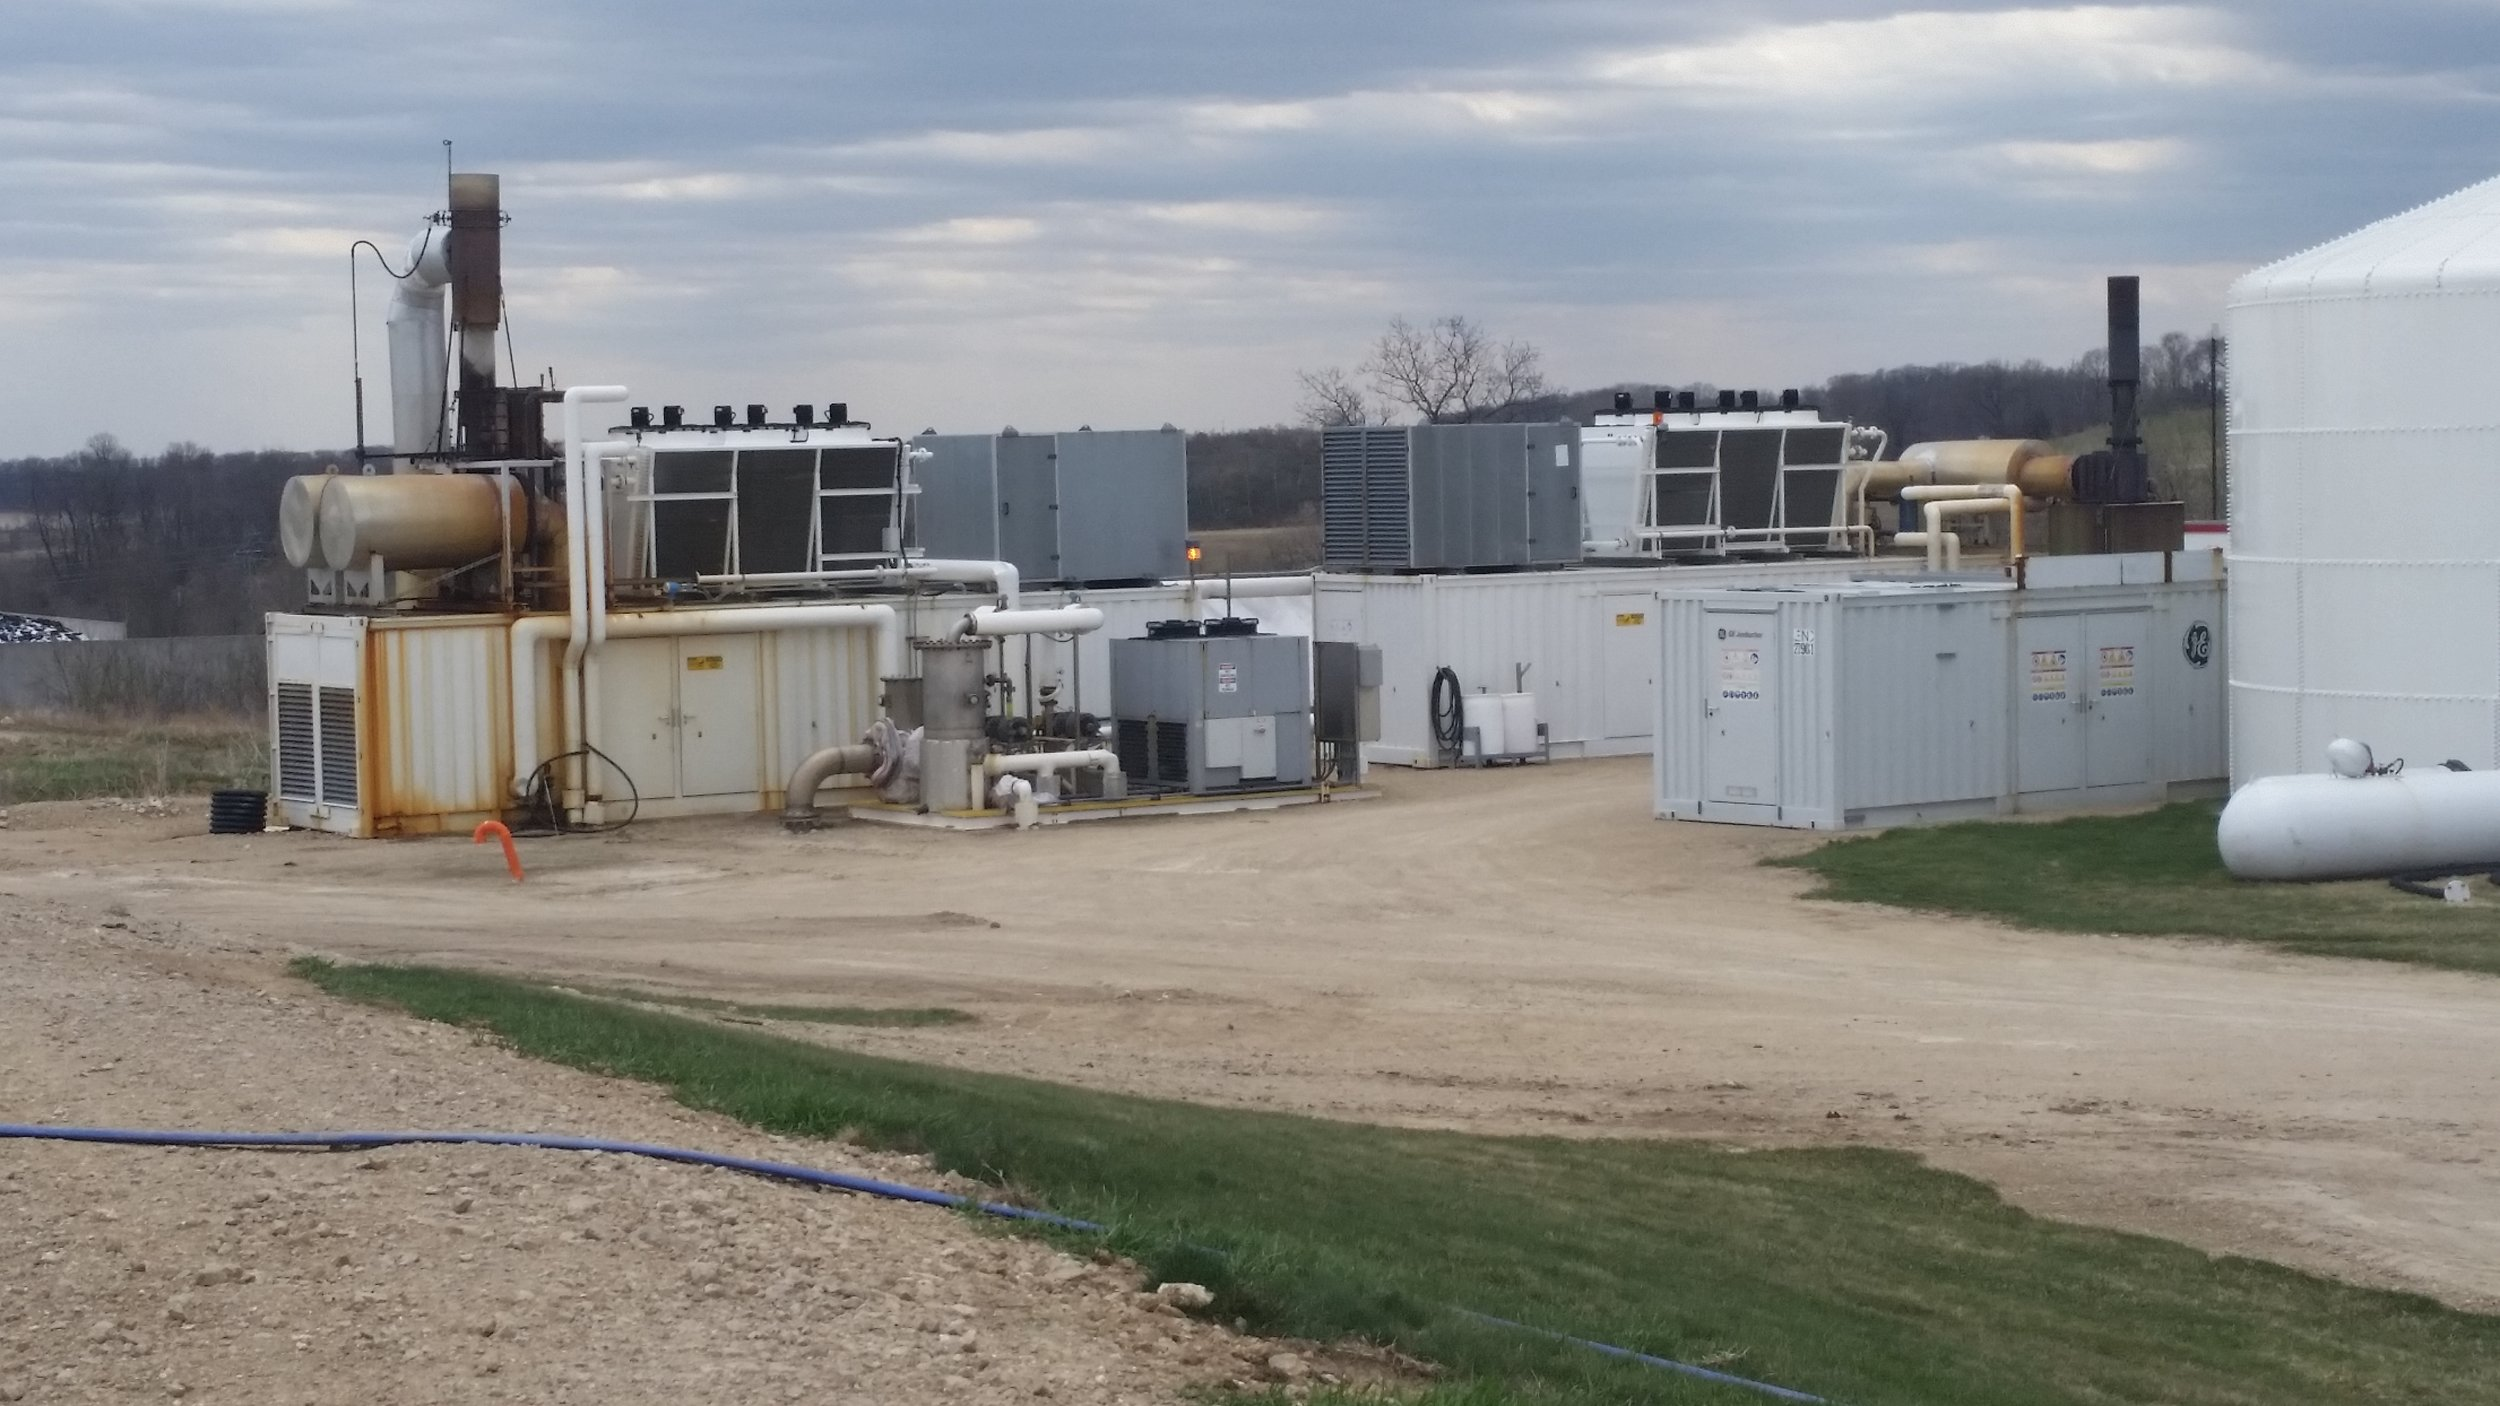 Two one megawatt generators are pictured here that produce energy by burning the methane.